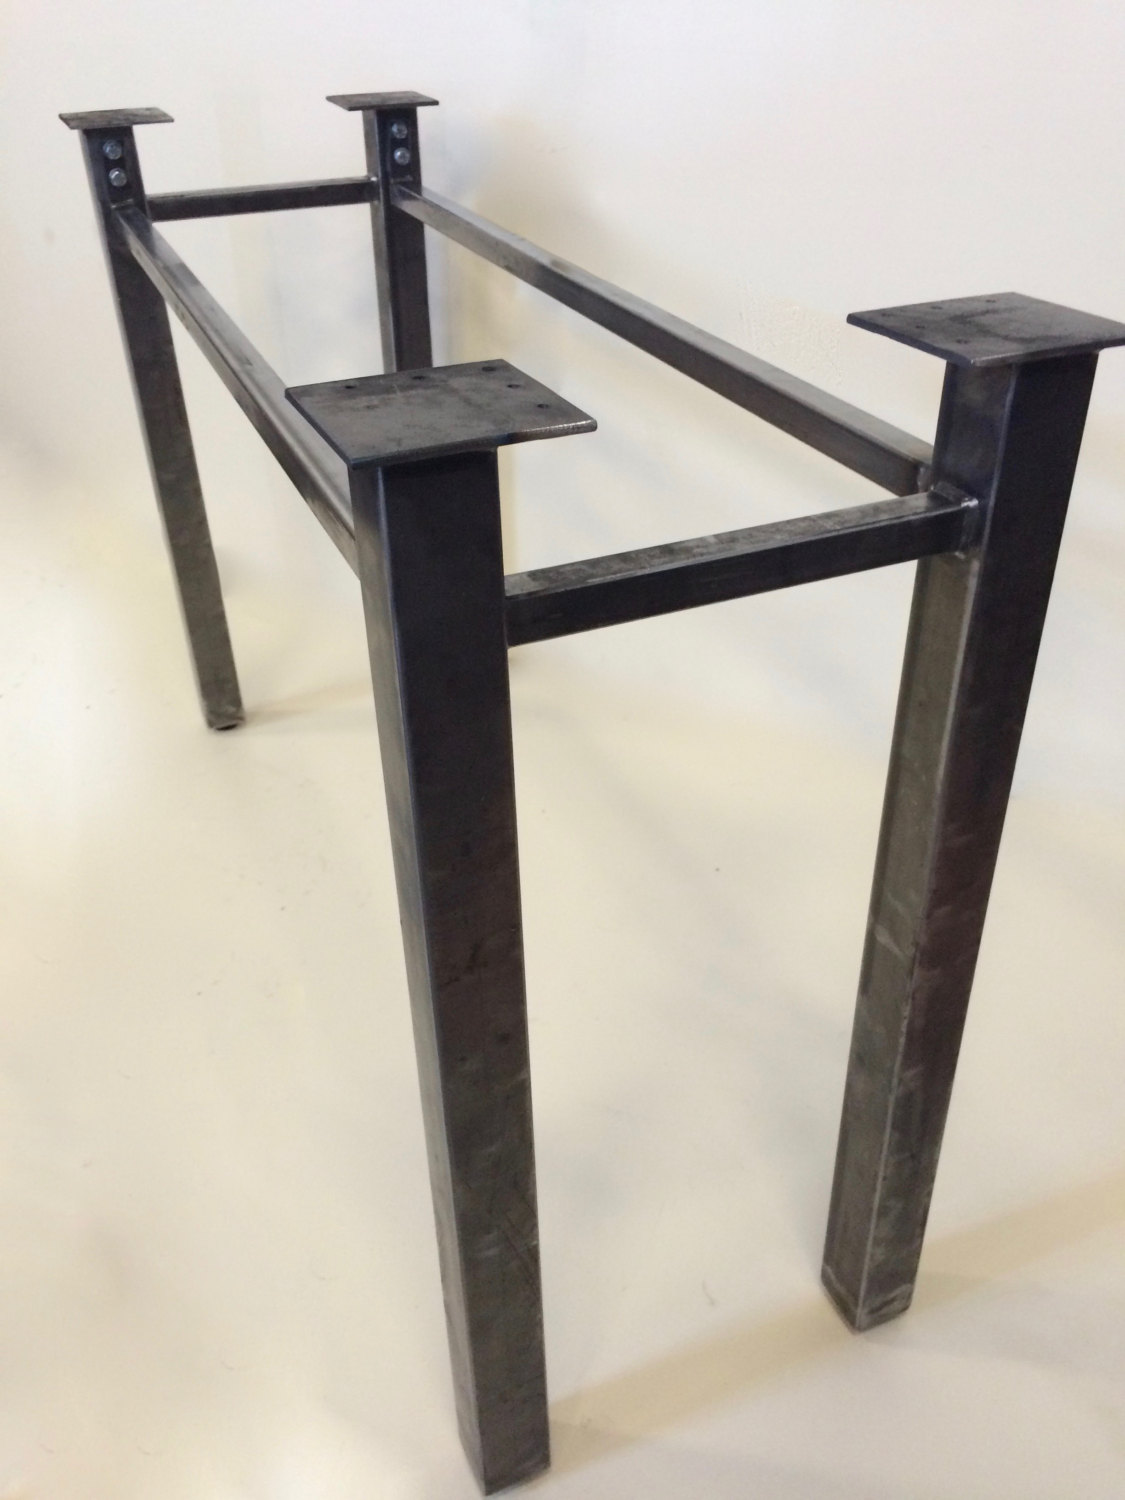 Work Bench Legs for Best Your Workspace Furniture Design: Work Bench Legs | Workbench Frame Kits | Legs For Workbench